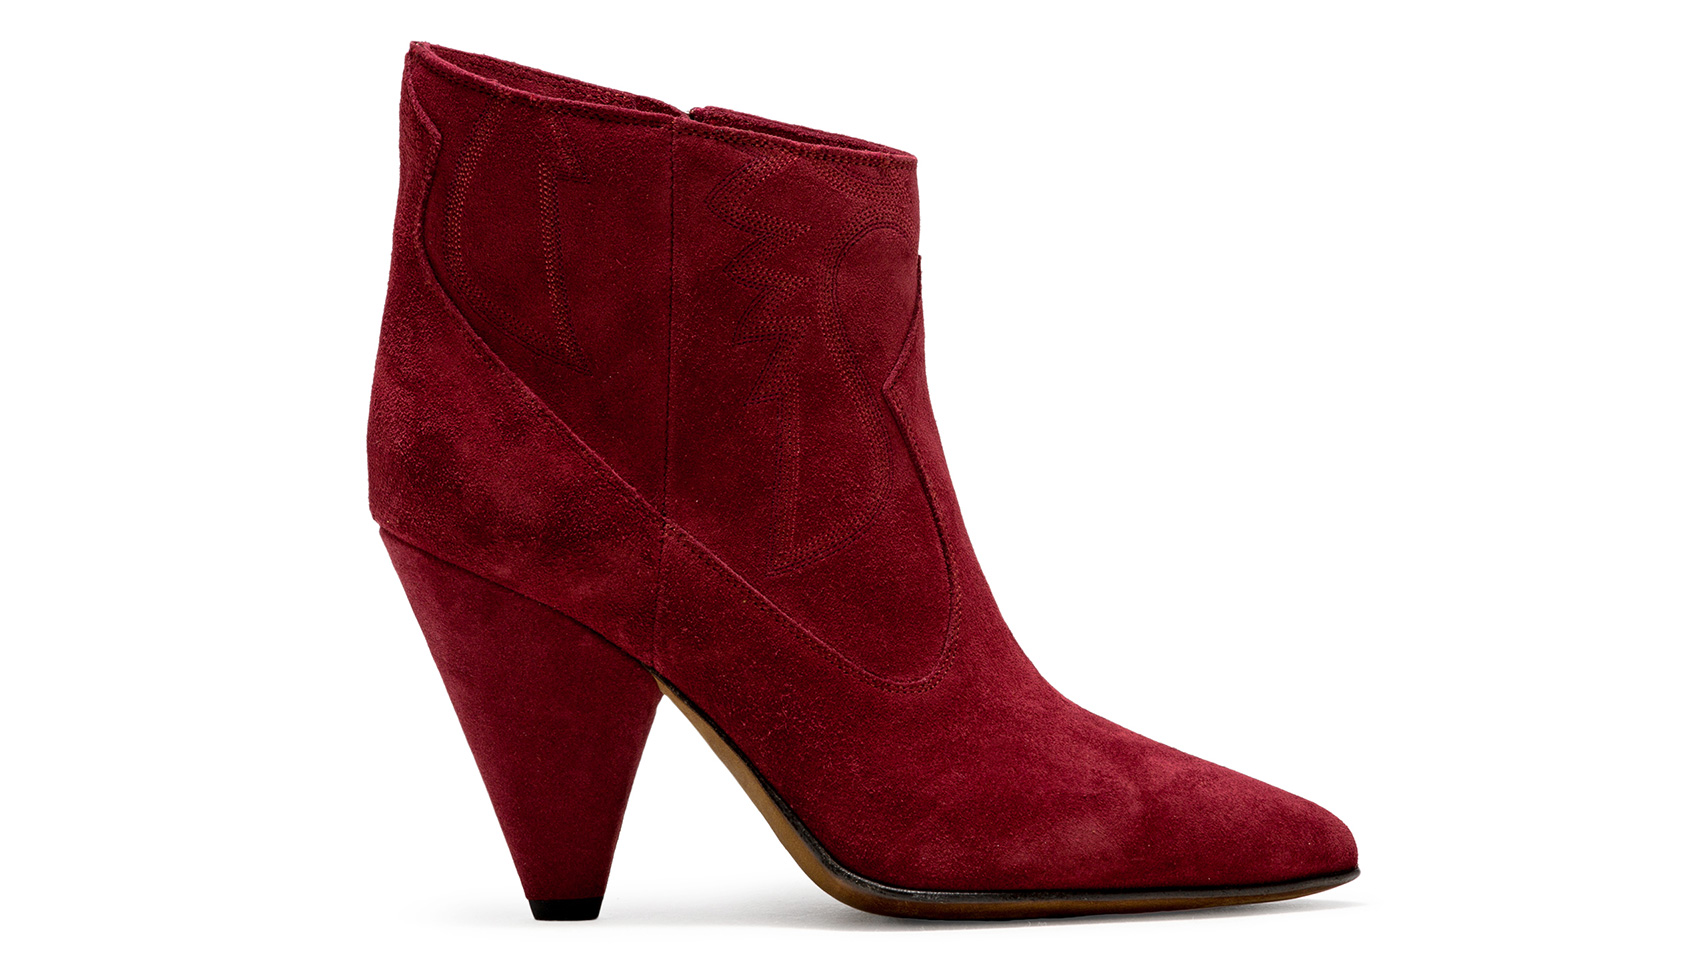 BUTTERO: RIO RED SUEDE ROSE LOW TOP BOOTS